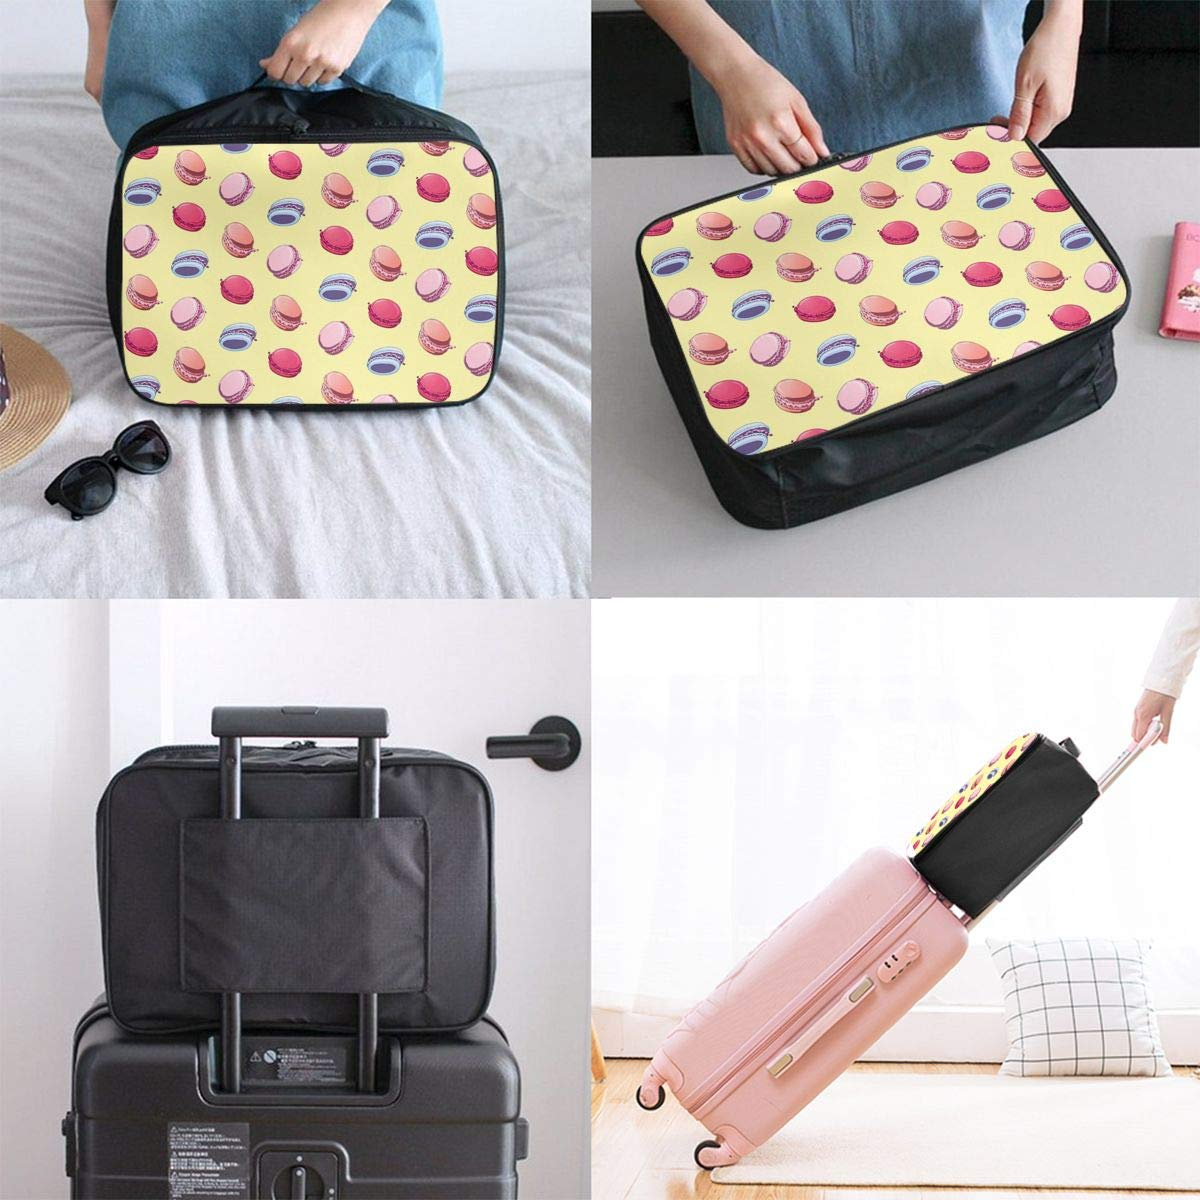 YueLJB Macaroon Sweet Repeat Lightweight Large Capacity Portable Luggage Bag Travel Duffel Bag Storage Carry Luggage Duffle Tote Bag